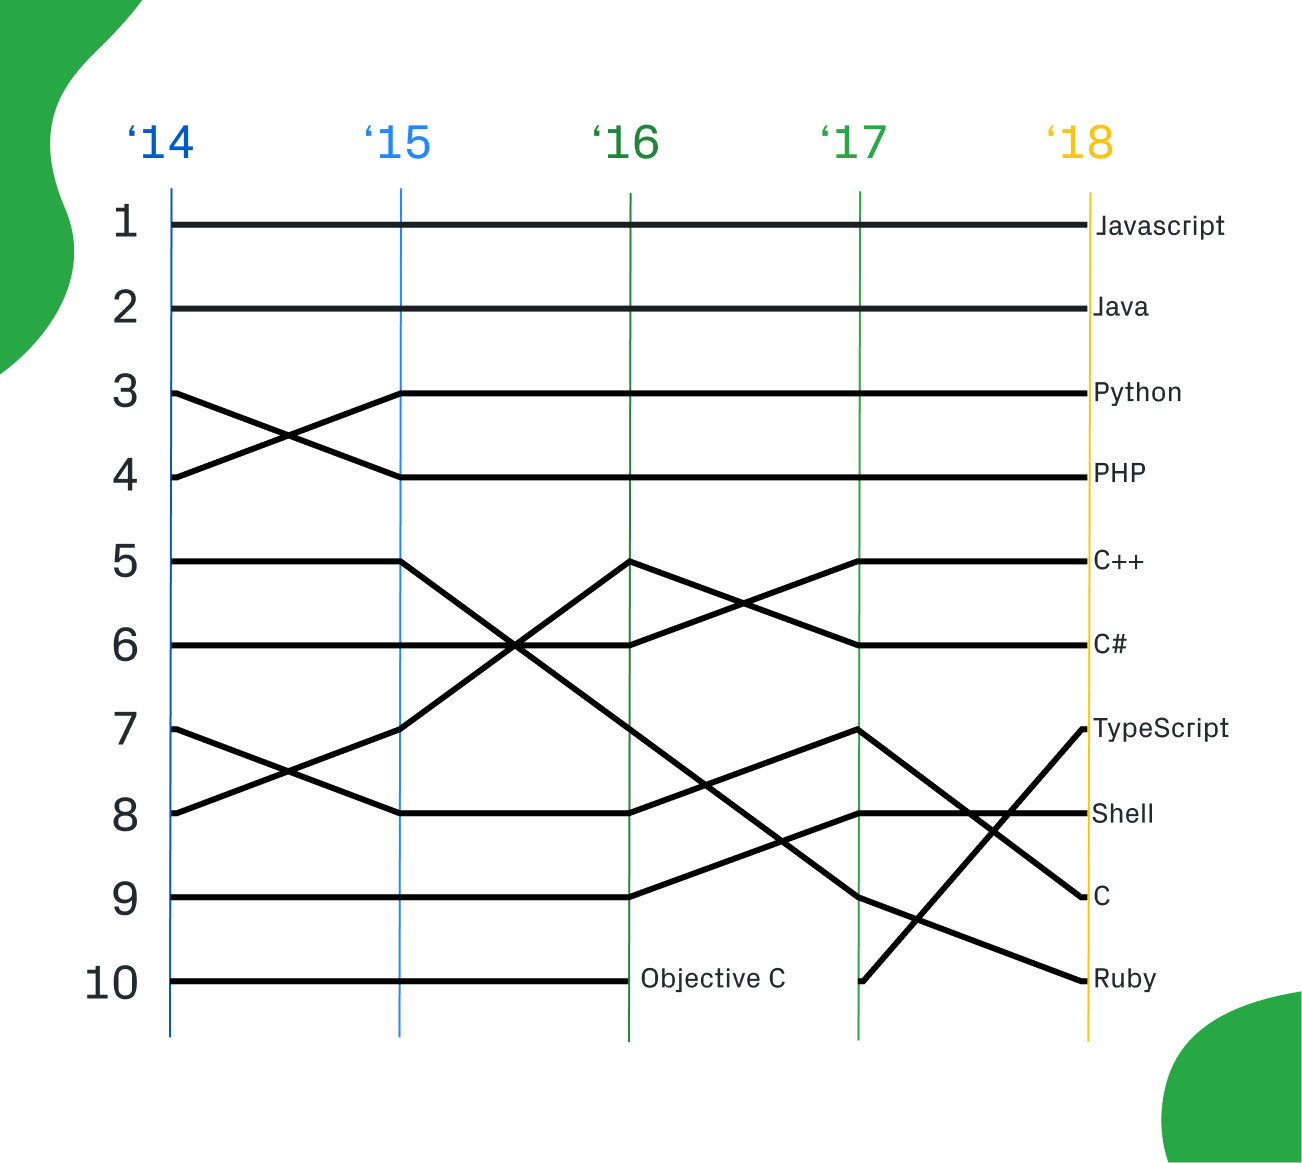 Top programming languages by contributor